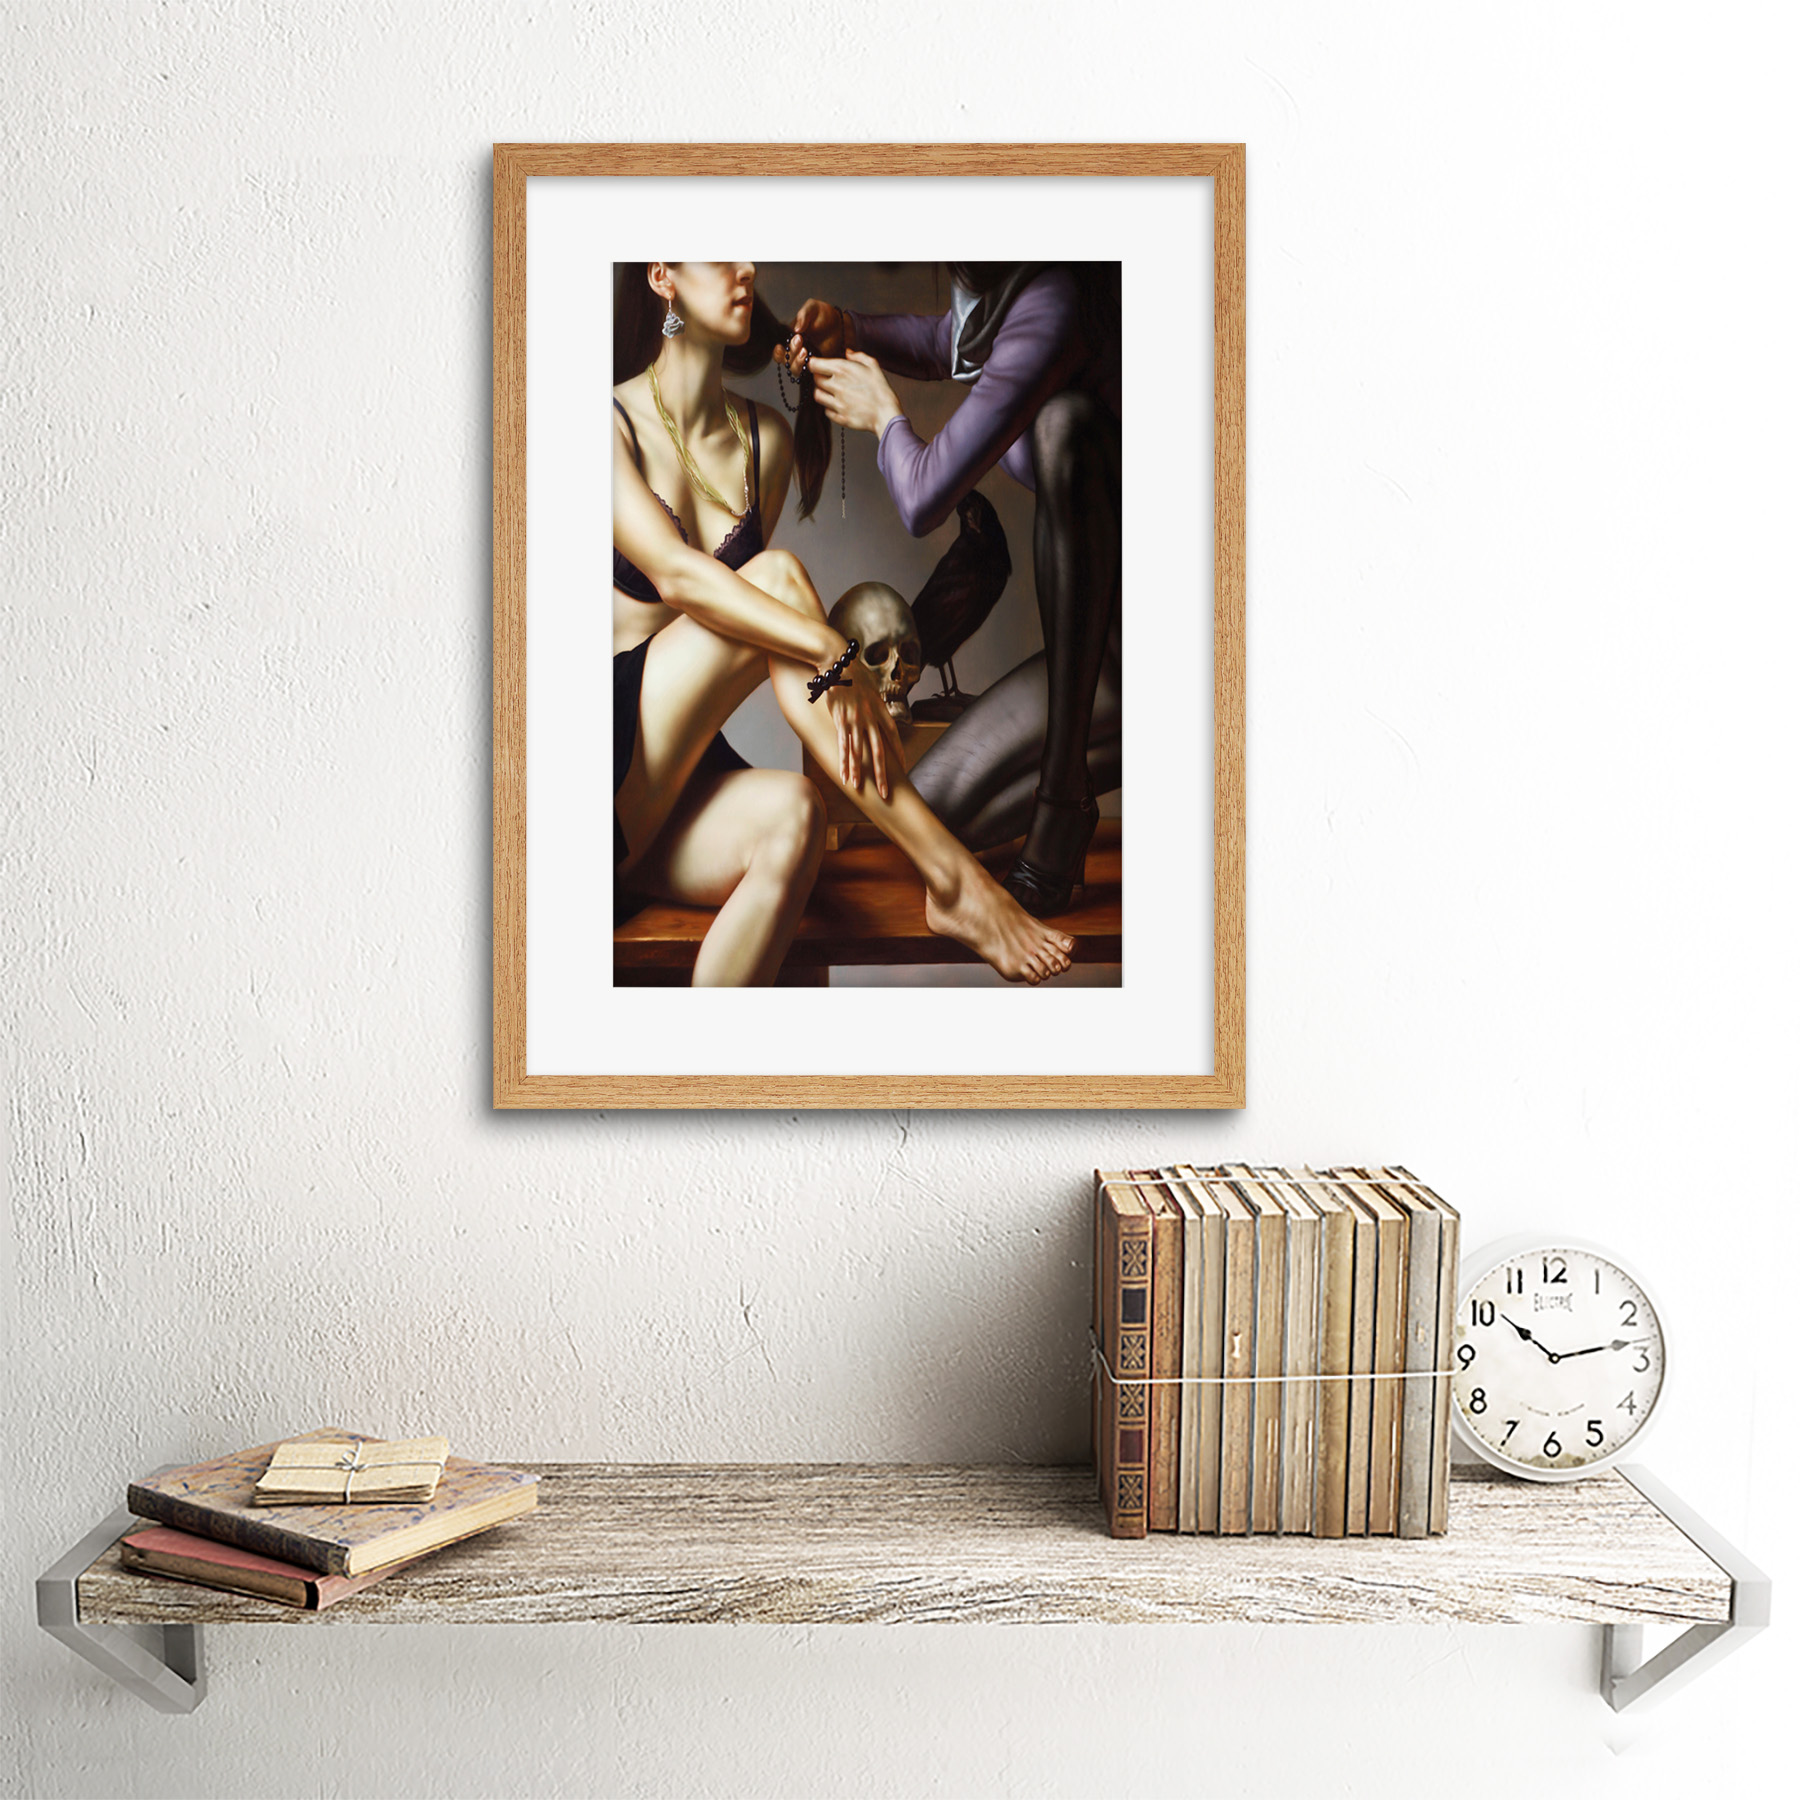 Painting-Balcar-Entering-Renaissance-Framed-Art-Print-12x16-Inch 縮圖 13